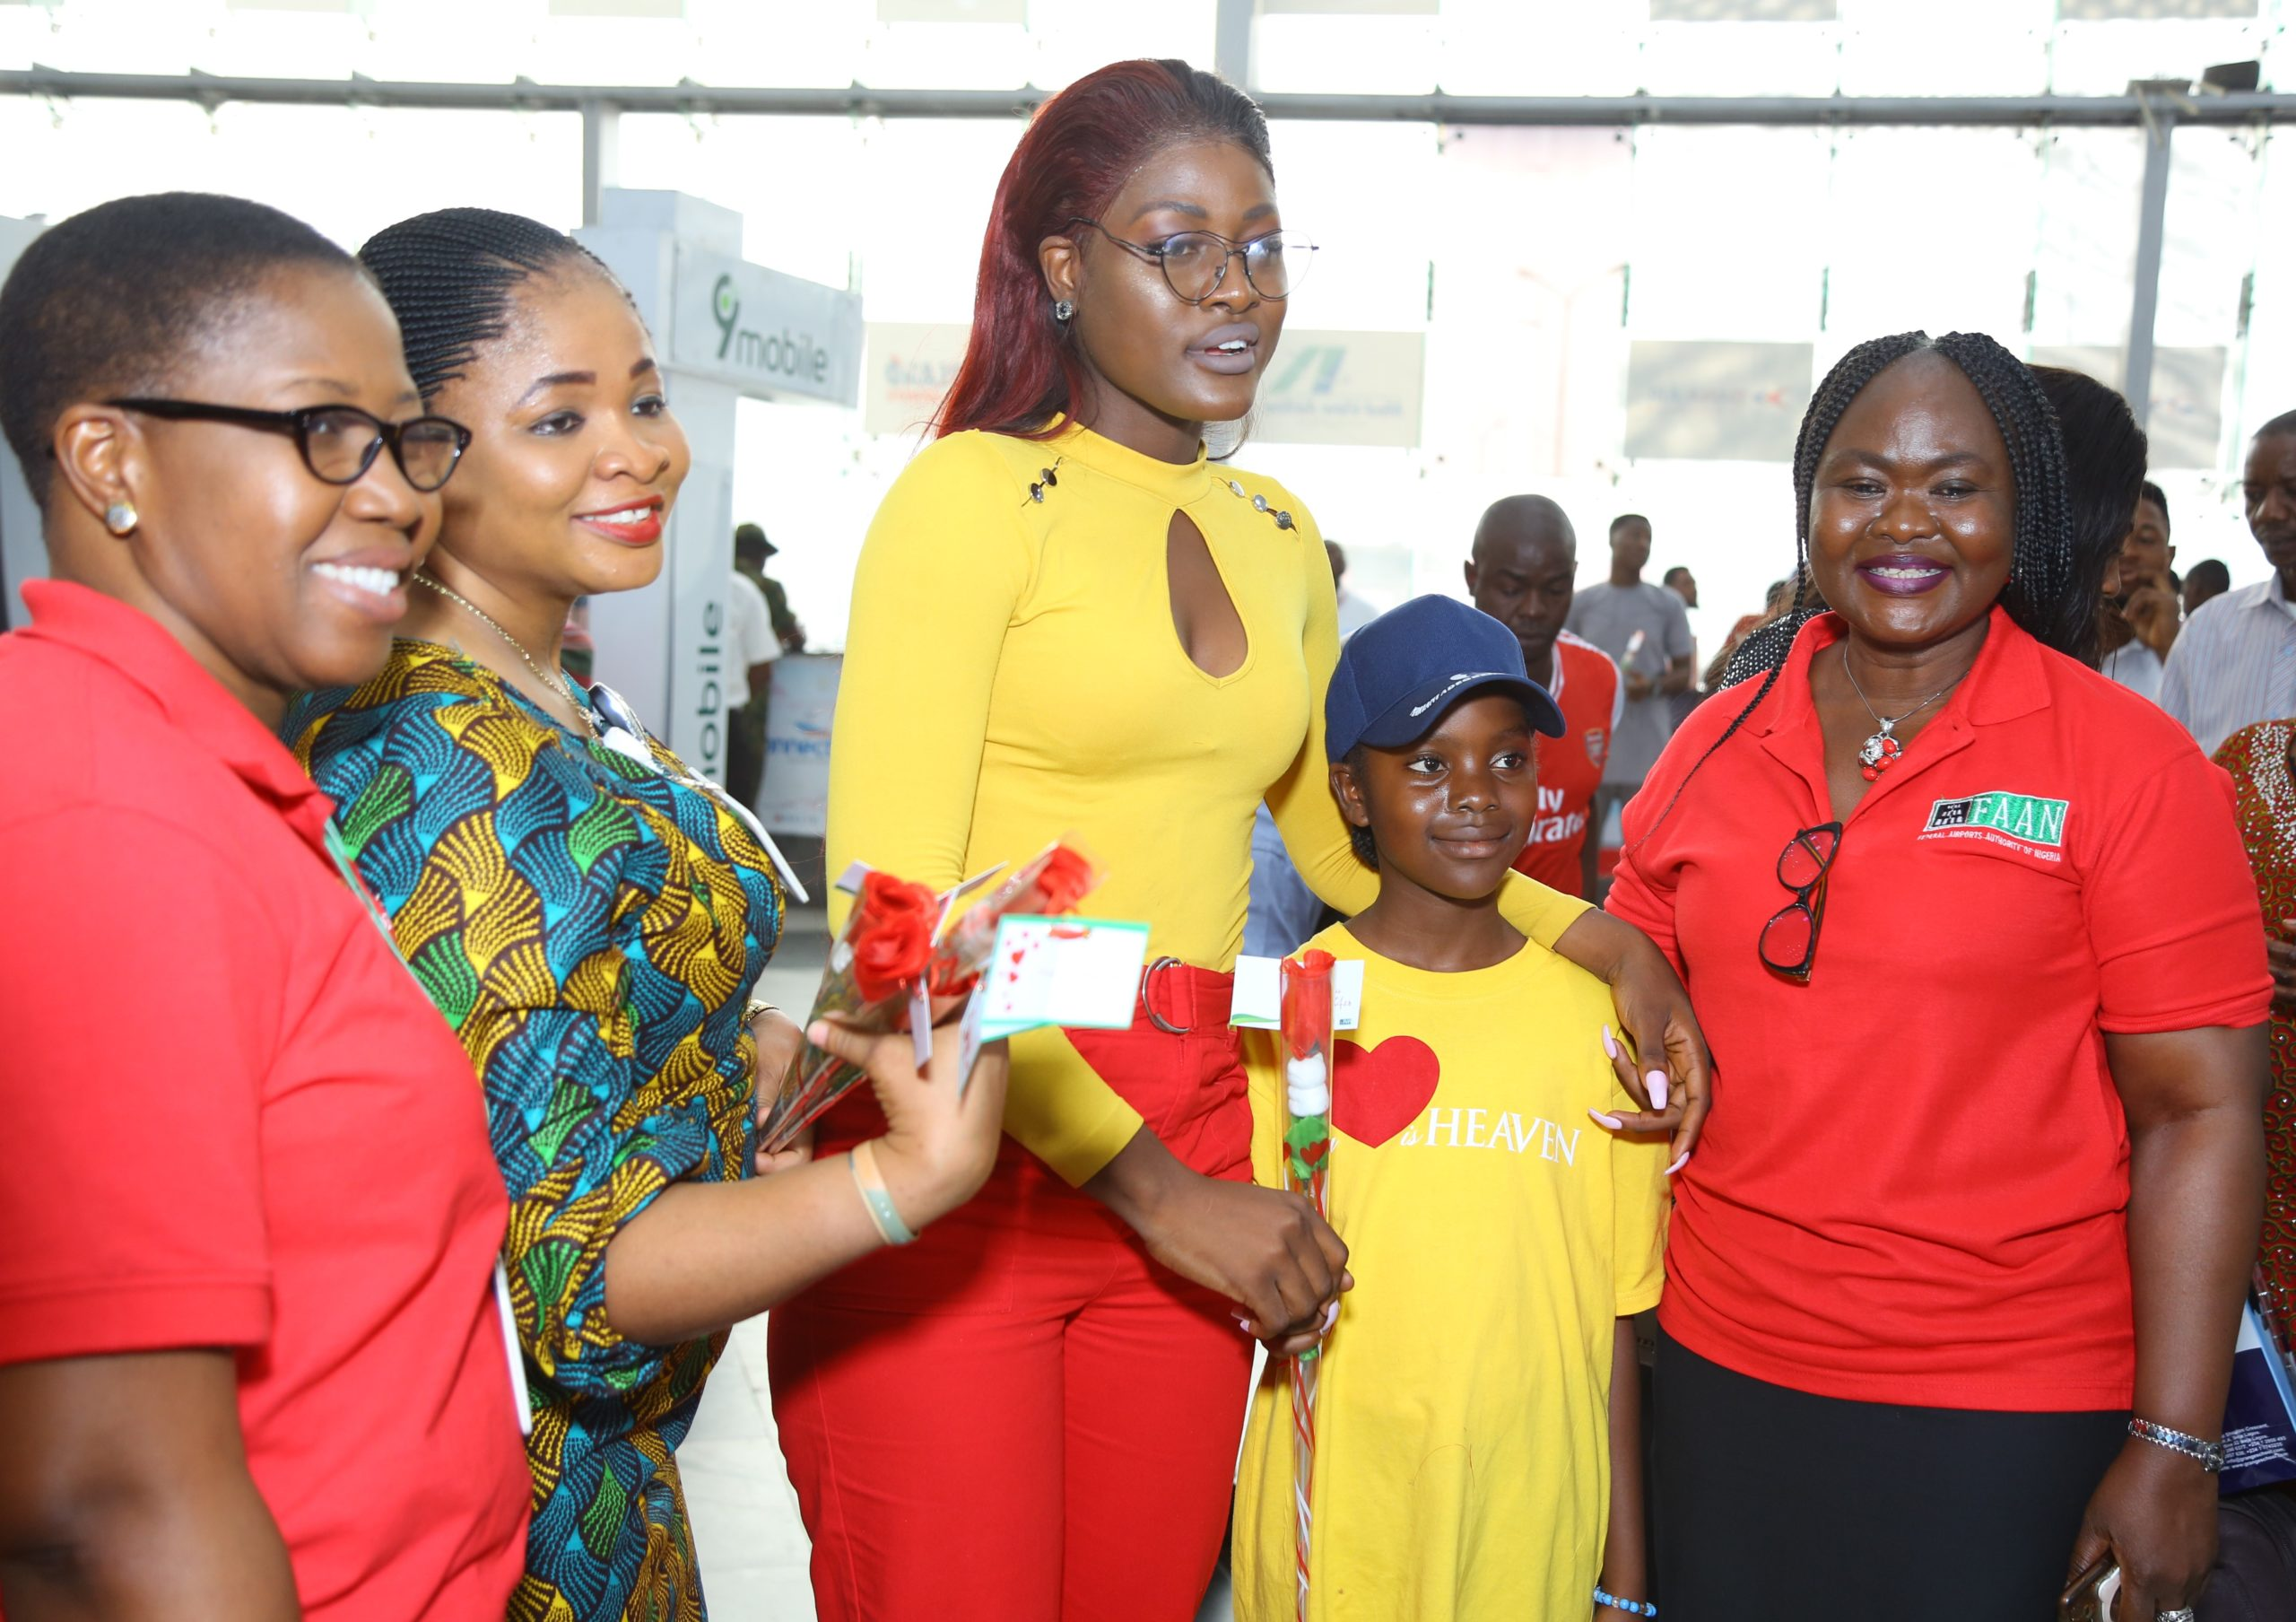 FAAN spreads love to Travelers on Valentine's Day (Photos) - Brand Spur